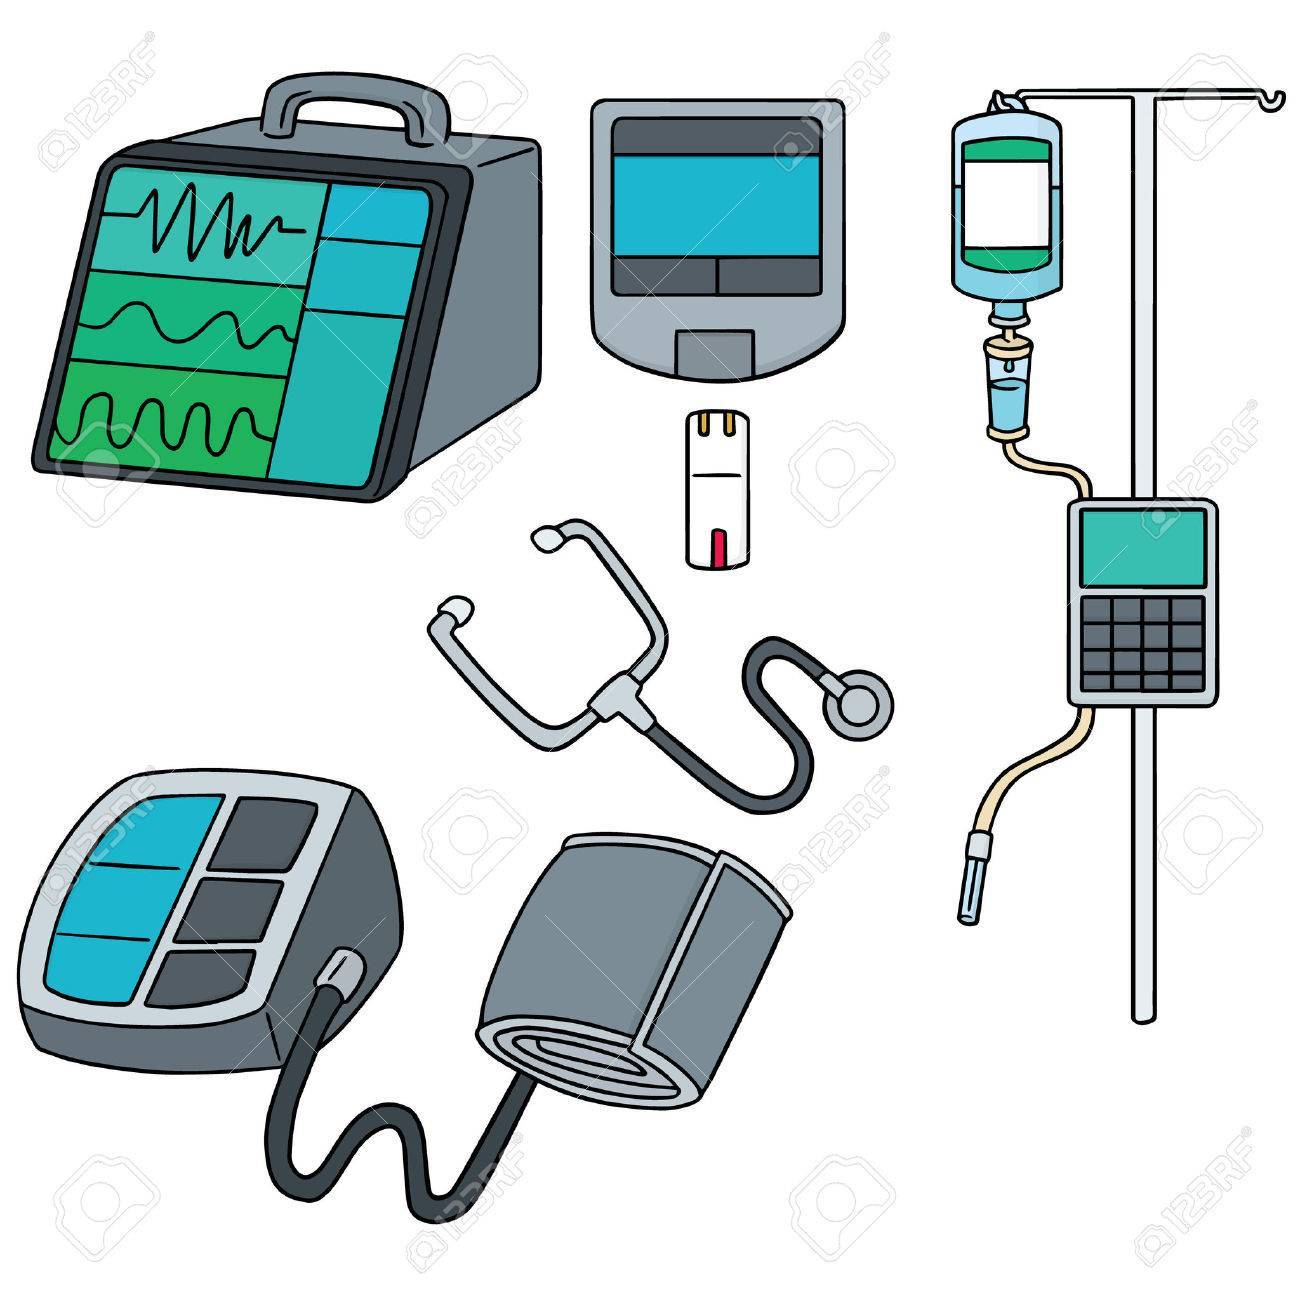 Clipart medical devices image freeuse download Medical device clipart 5 » Clipart Portal image freeuse download